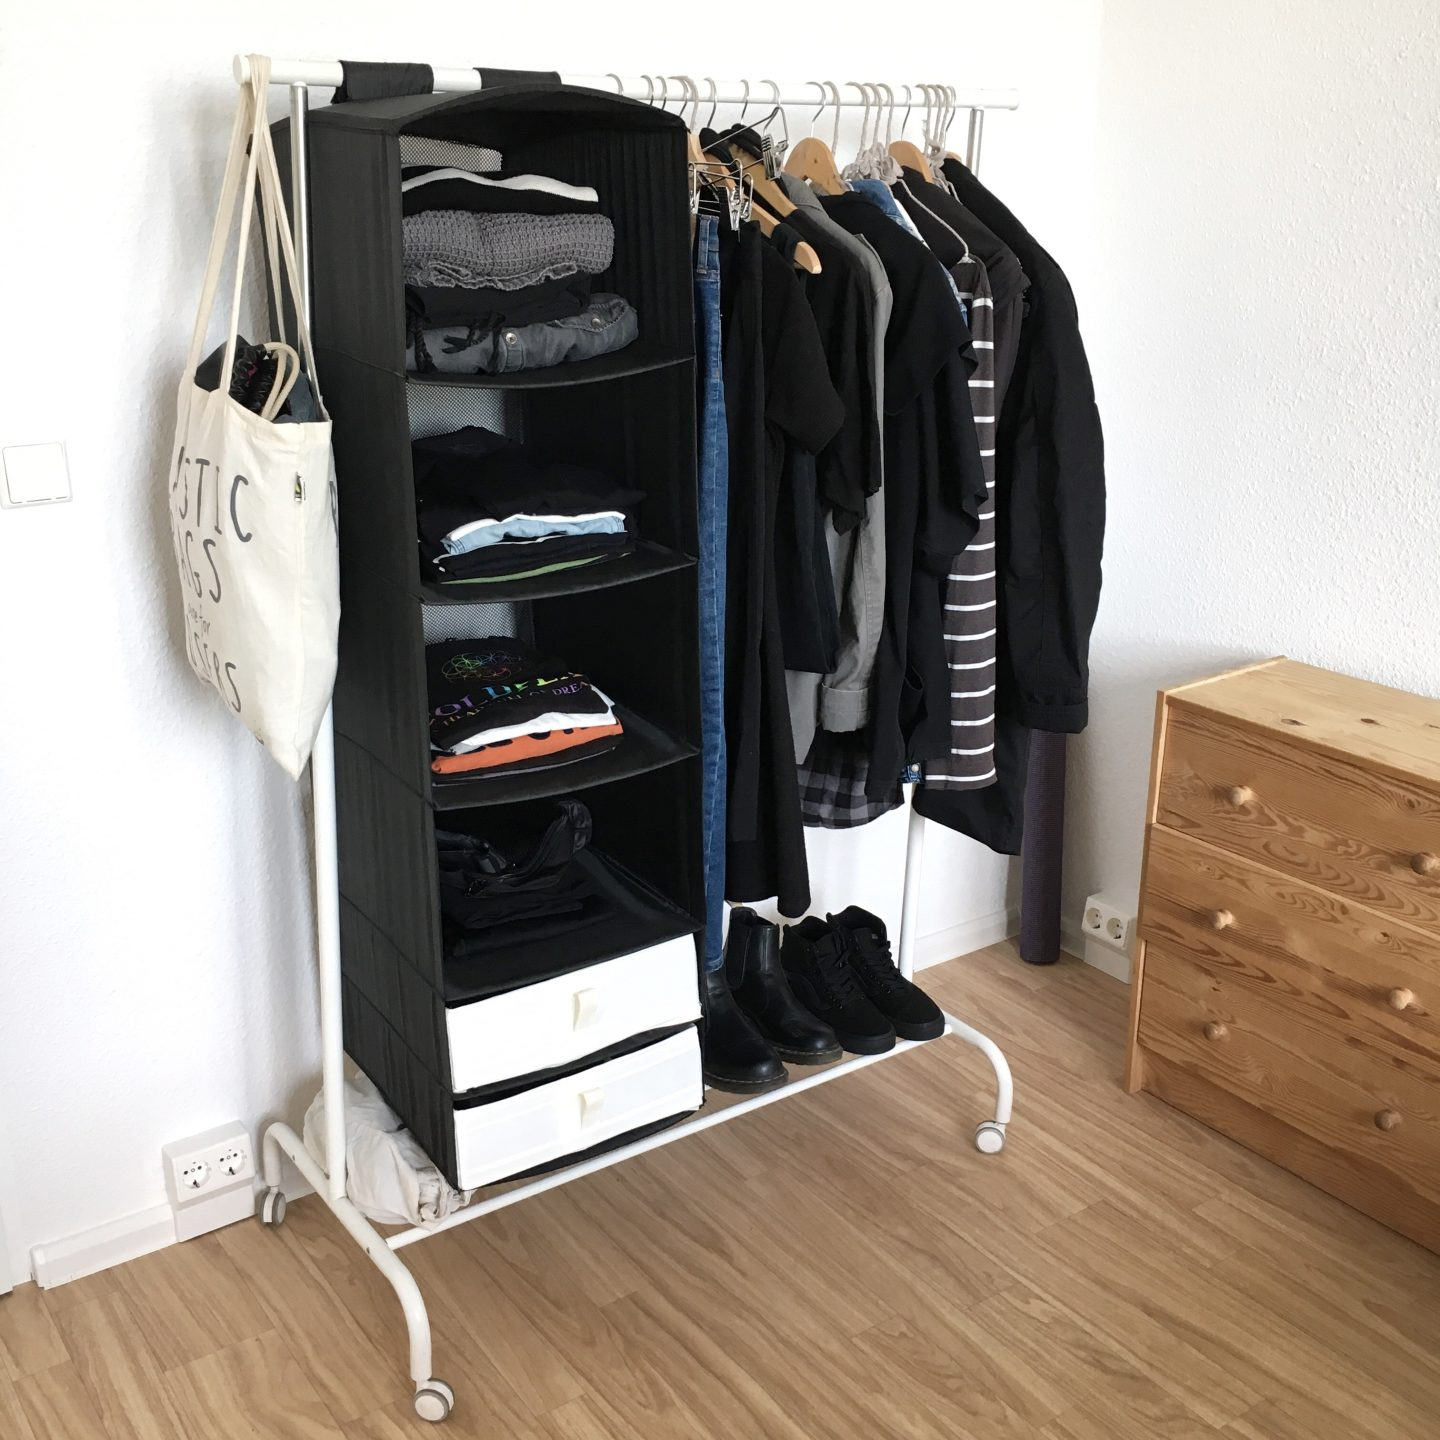 The wardrobe diaries #6 : how to declutter your wardrobe